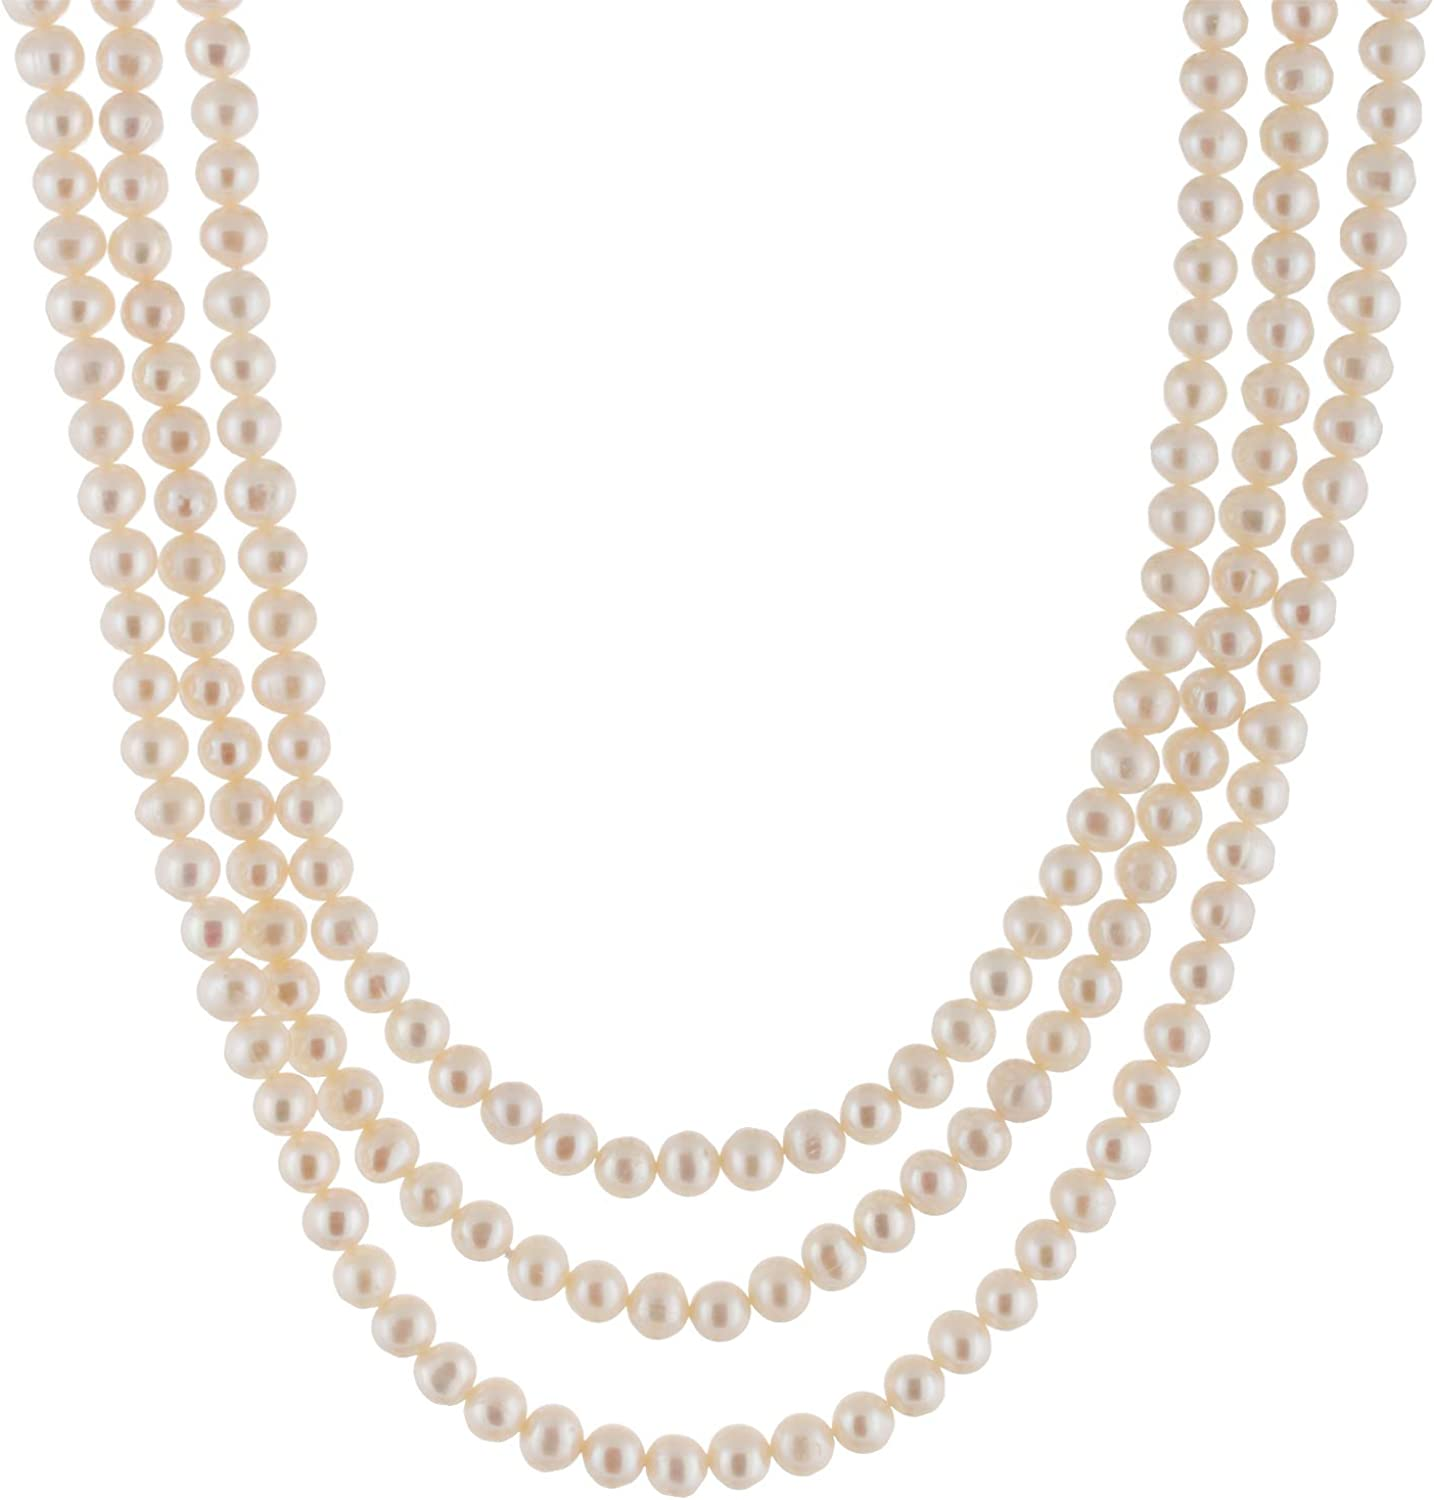 Handpicked A Quality 5-6mm White Cream Freshwater Cultured Pearl Strand Endless Necklace